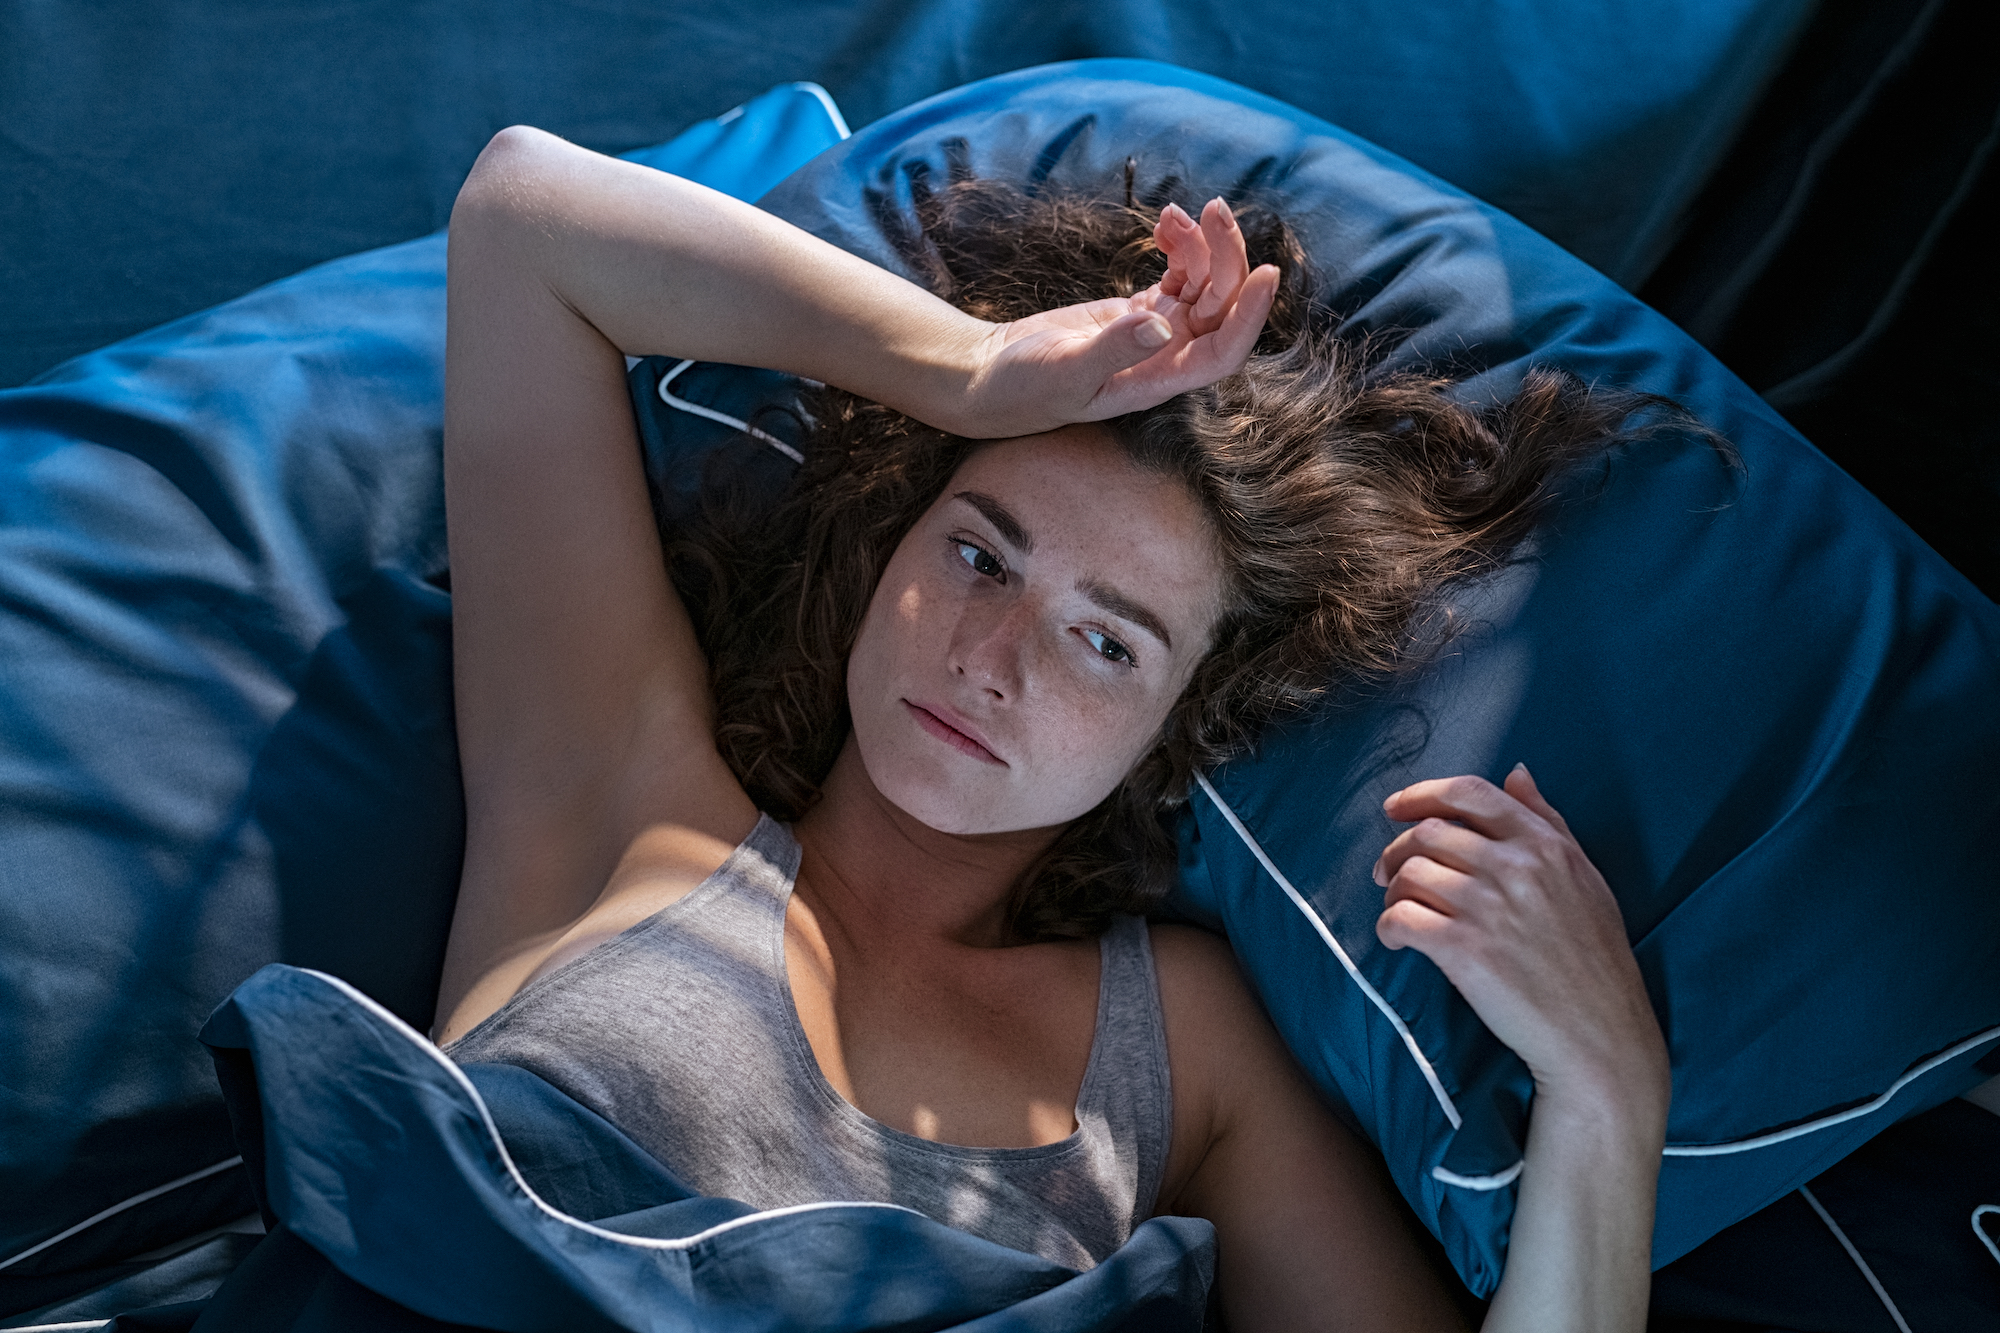 Young stressed woman lying on bed late at night suffering from insomnia, sleep apnea or stress. Top view of depressed girl lying bed with dark pillow and blue blanket late at night. High angle view of awake girl in the middle of the night.